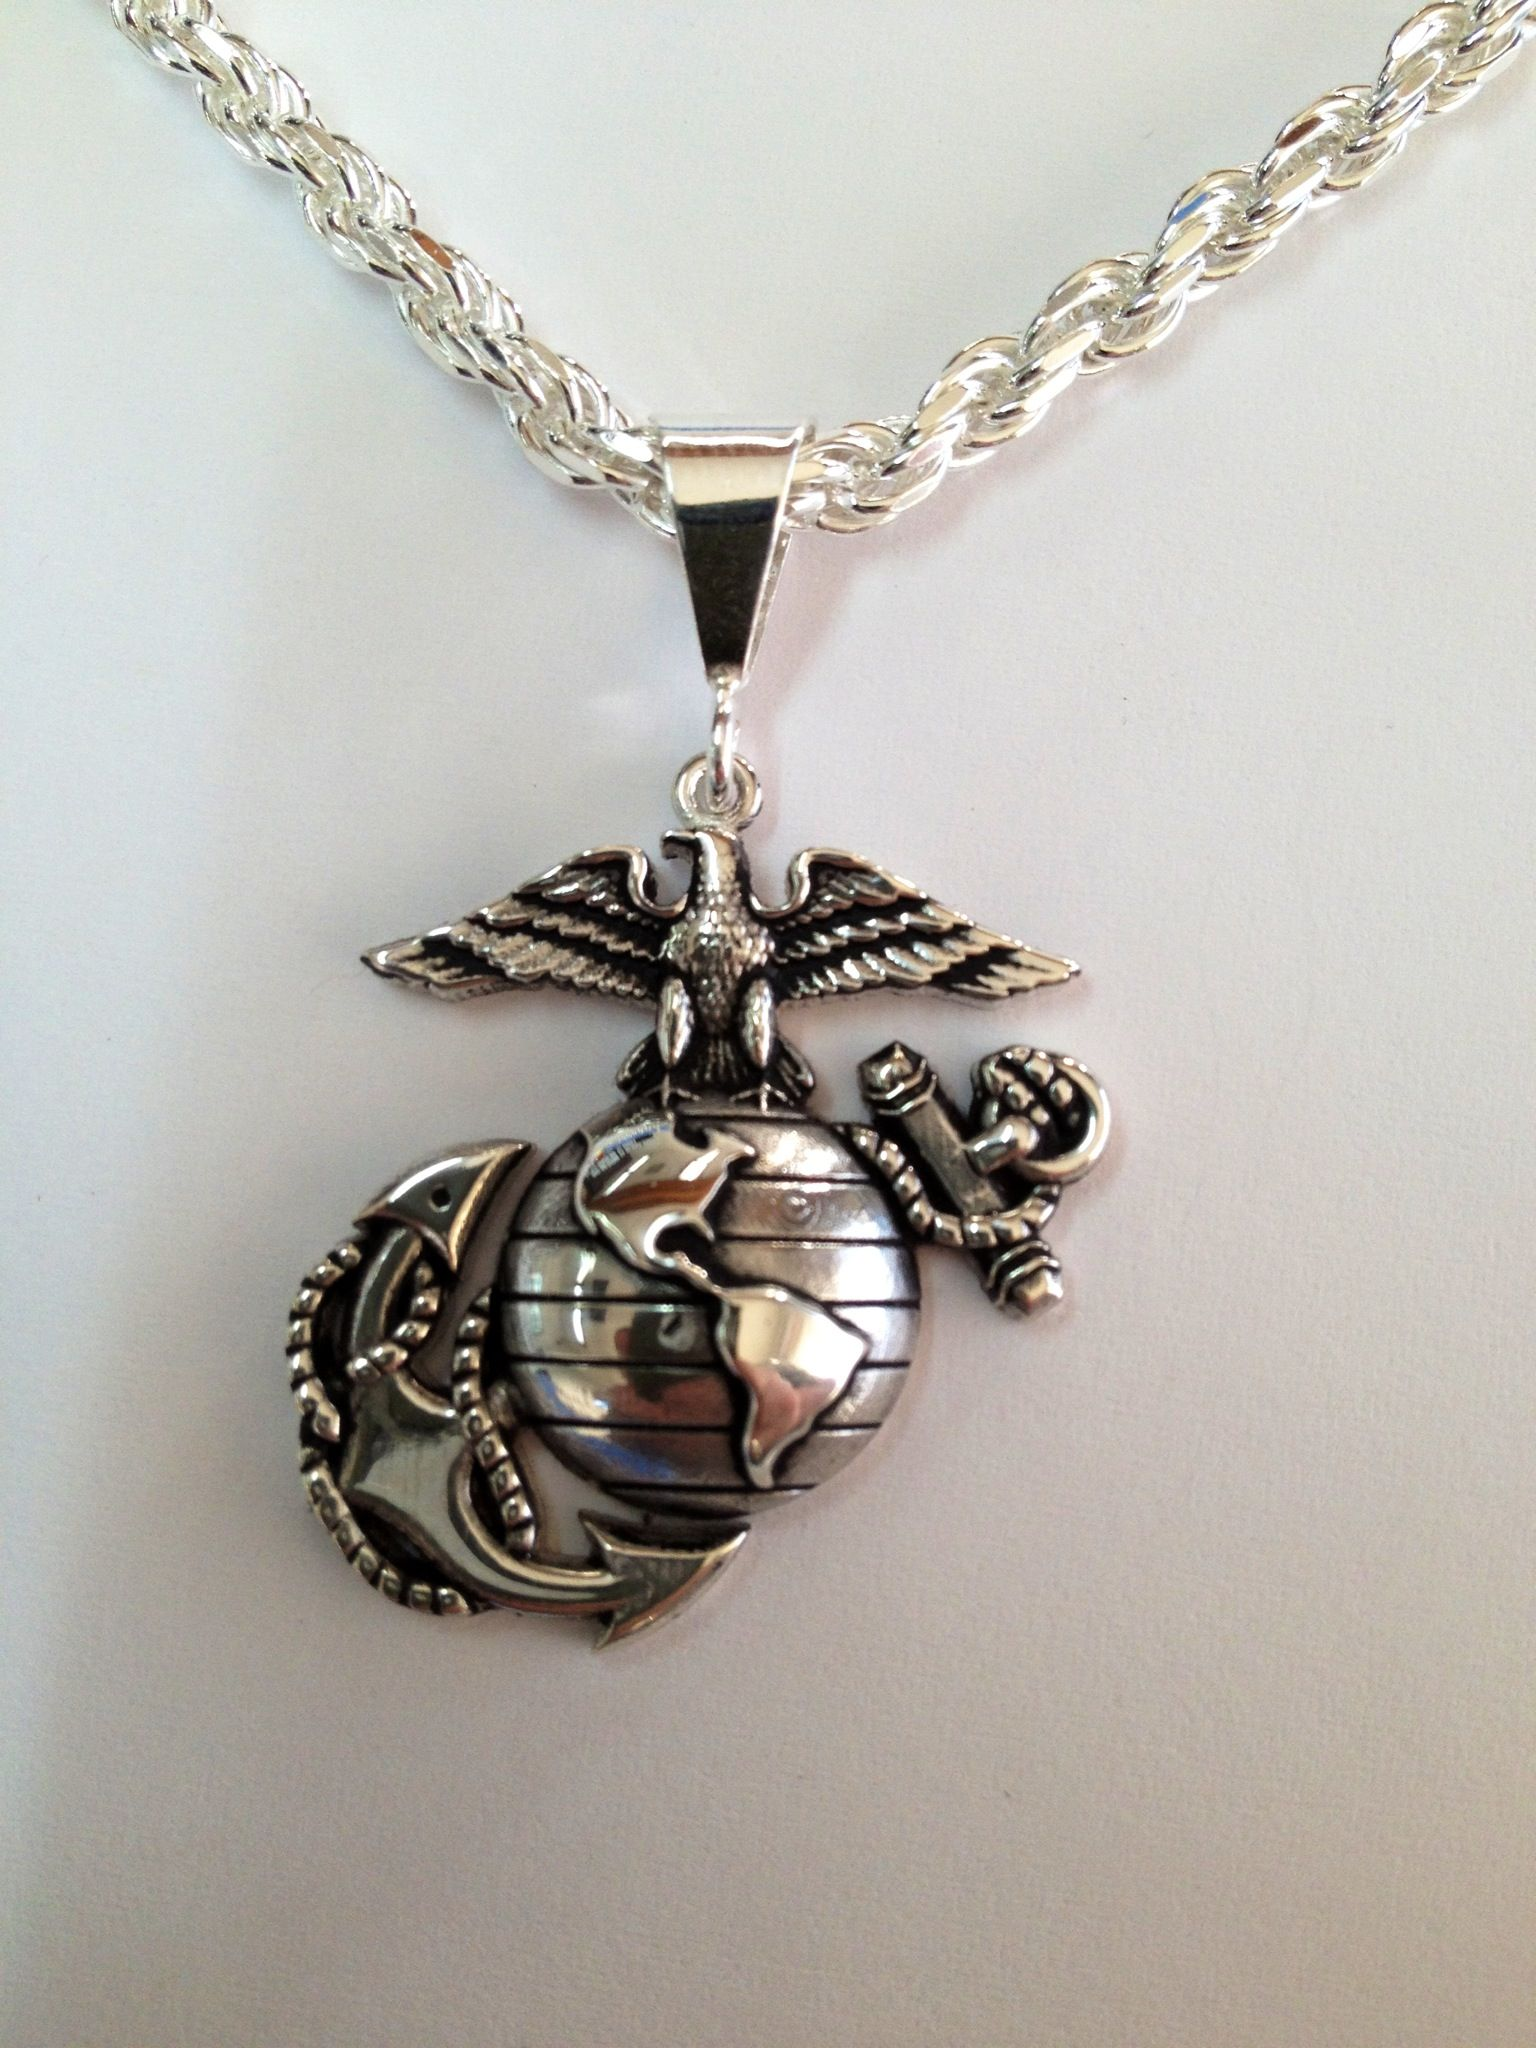 1 tall solid sterling usmc eagle globe and anchor pendant made in 1 tall solid sterling usmc eagle globe and anchor pendant made in the usa by usmc veteran owned small business licensed and approved by the usmc aloadofball Choice Image